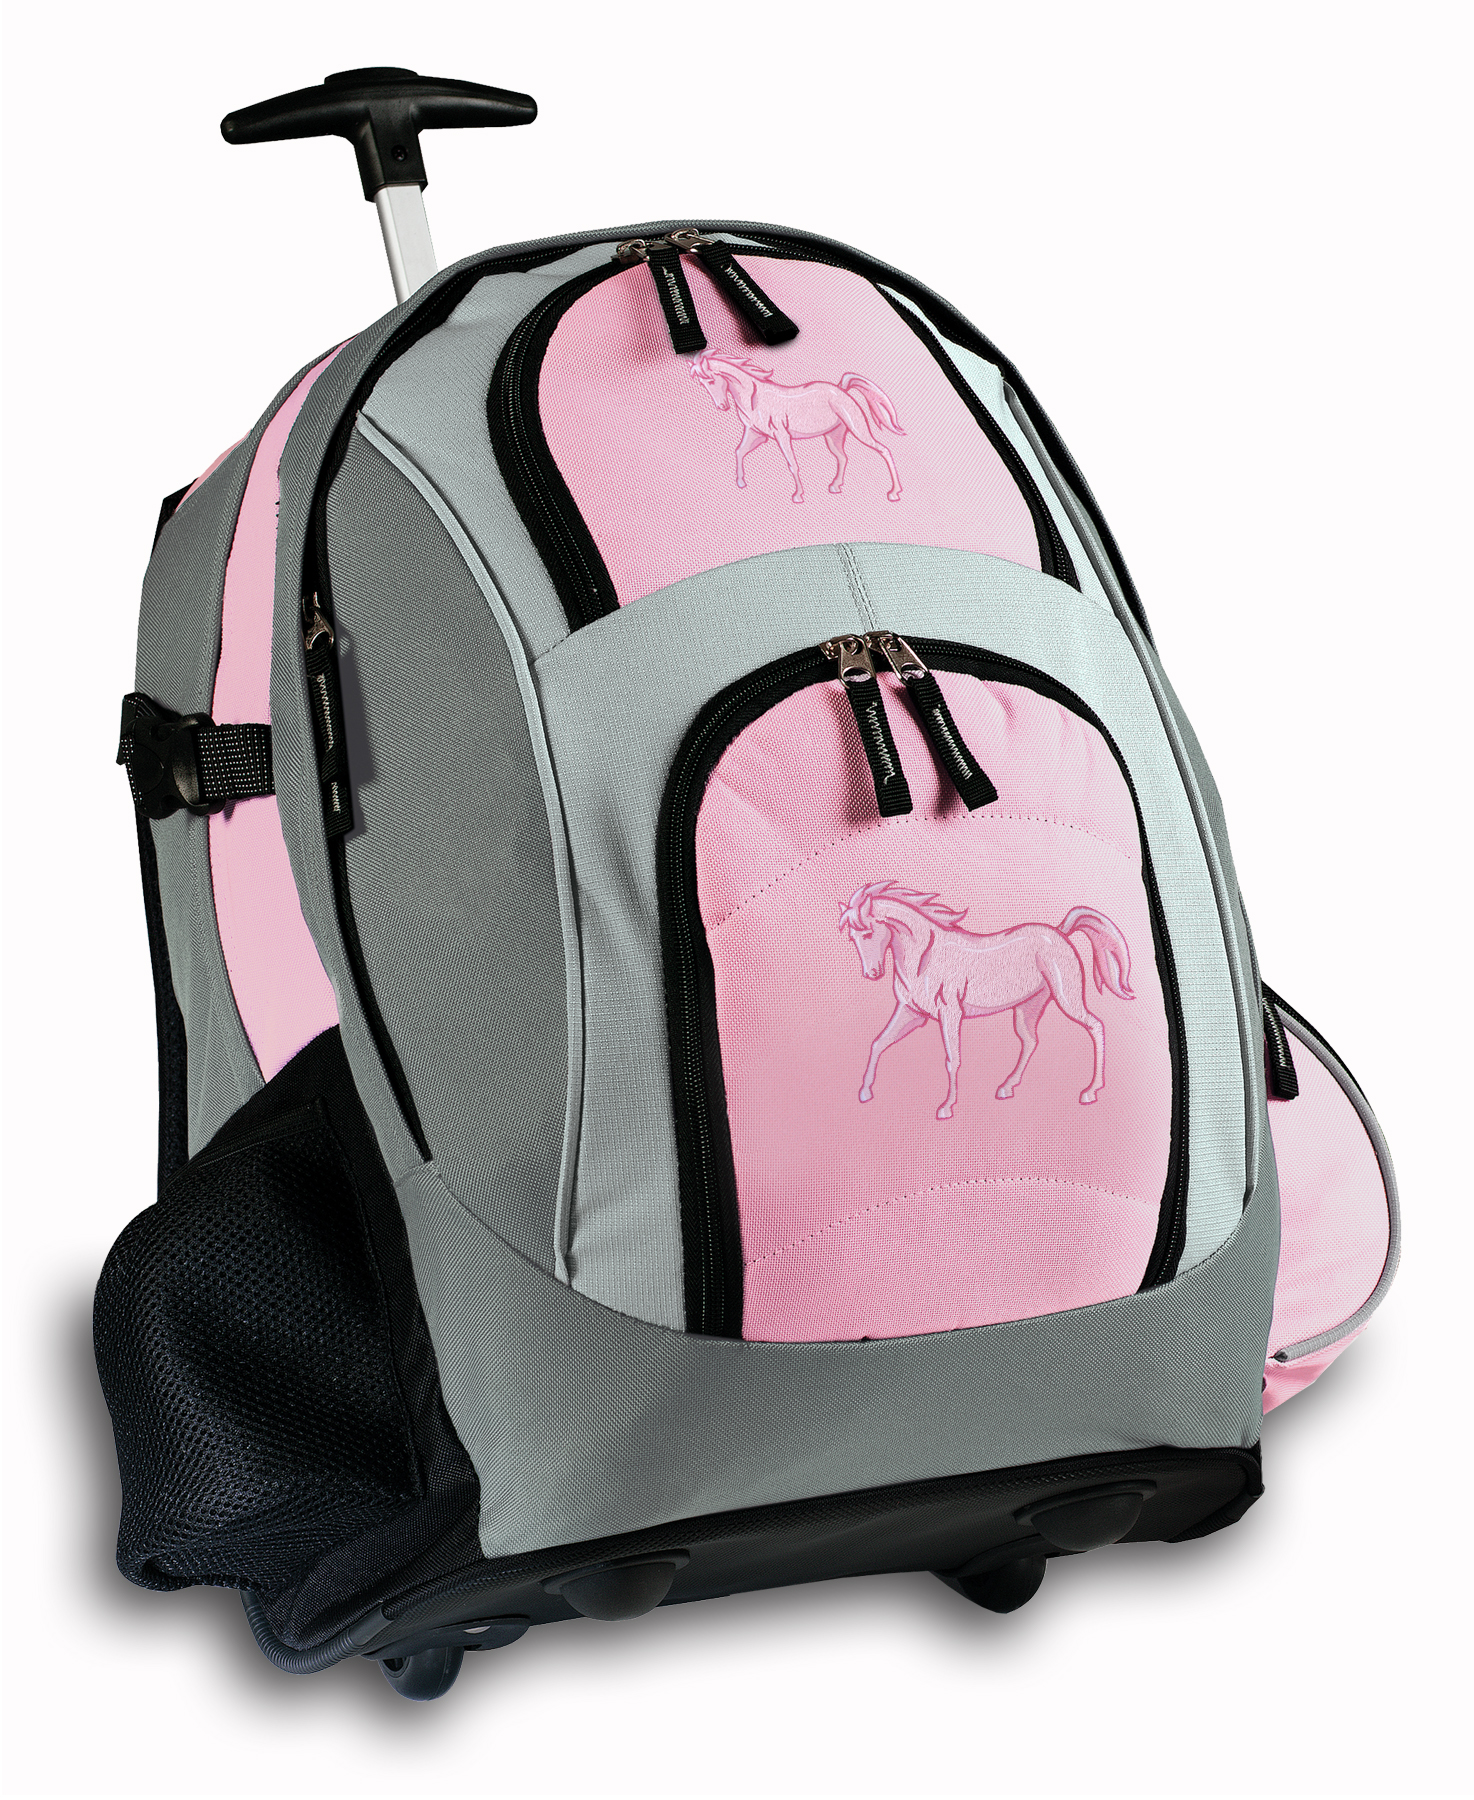 Backpacks With Wheels For Girls ppL7T7qn